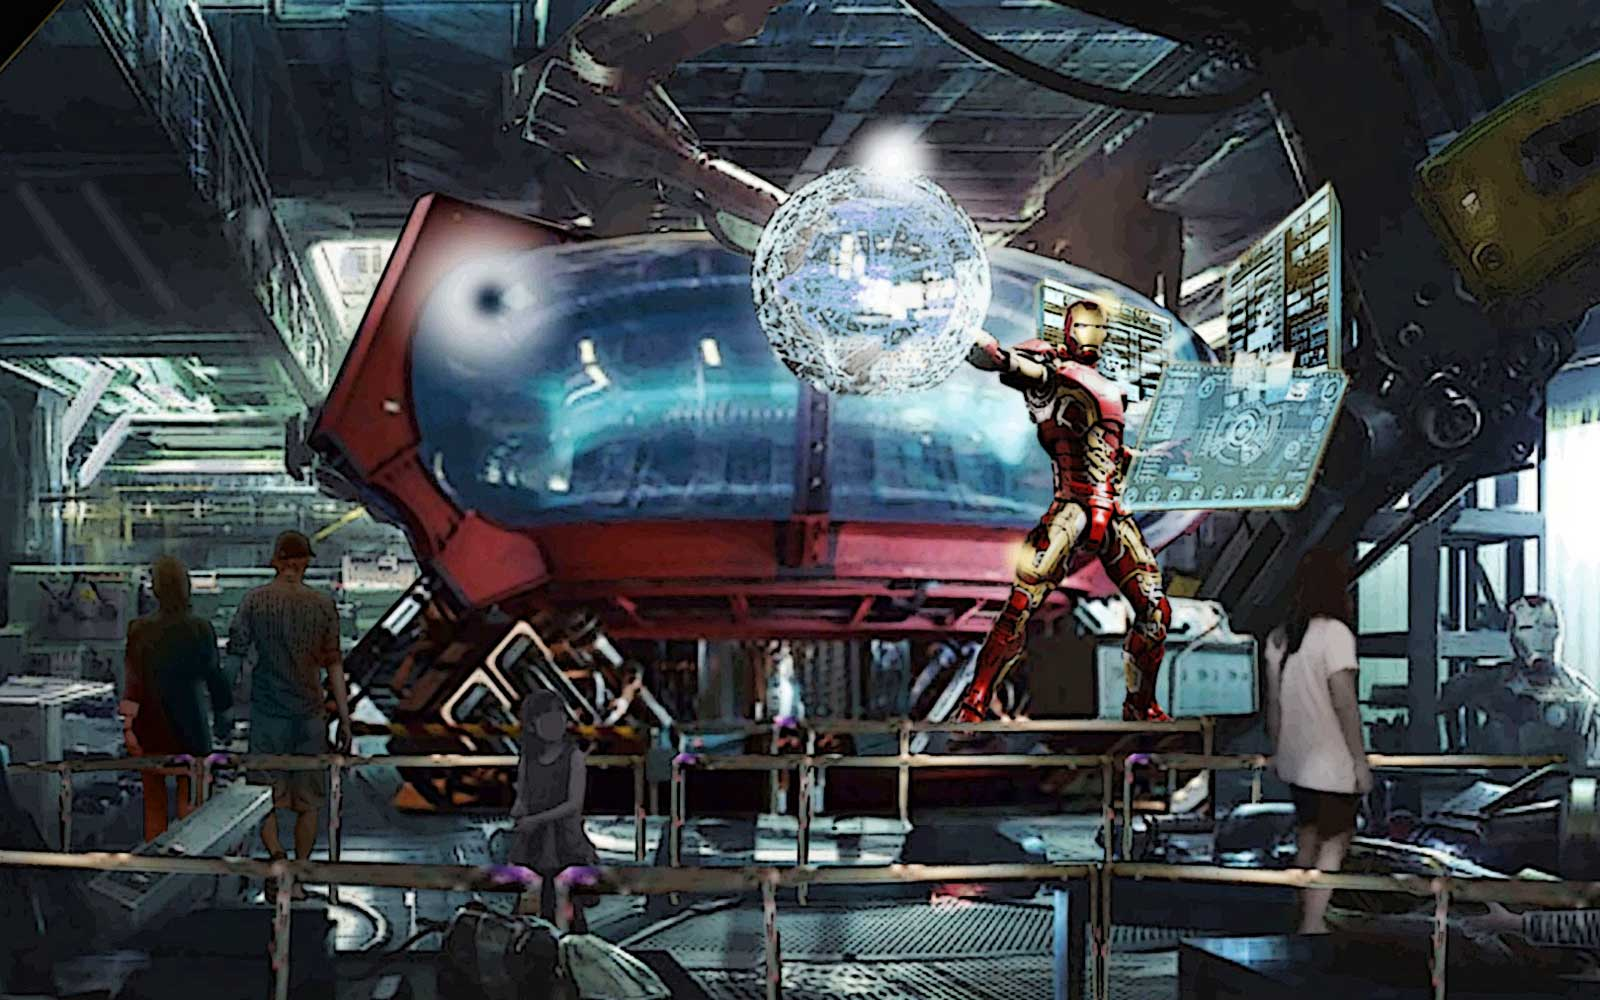 Iron Man and Marvel Rollercoaster concept art for Disneyland Paris